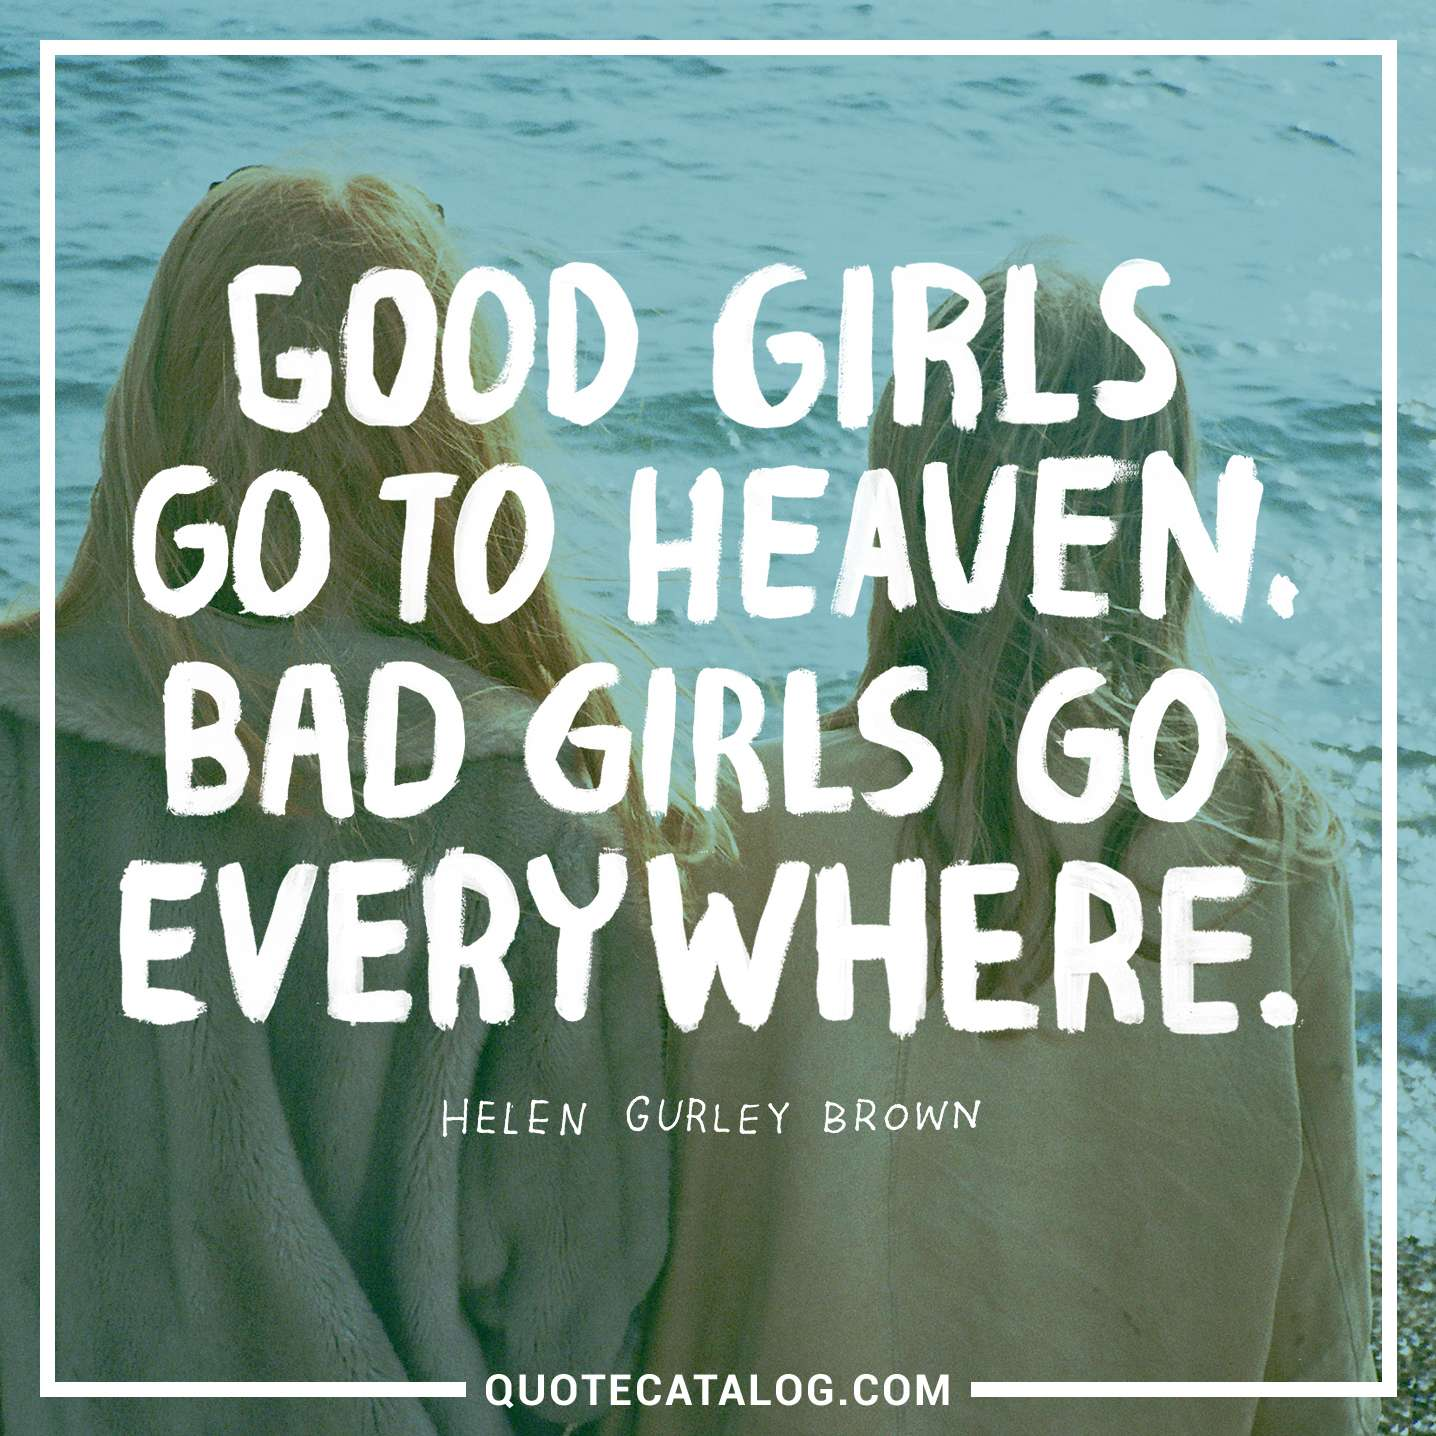 71d40b57 Helen Gurley Brown Quote - Good girls go to heaven. Bad girls go ev ...